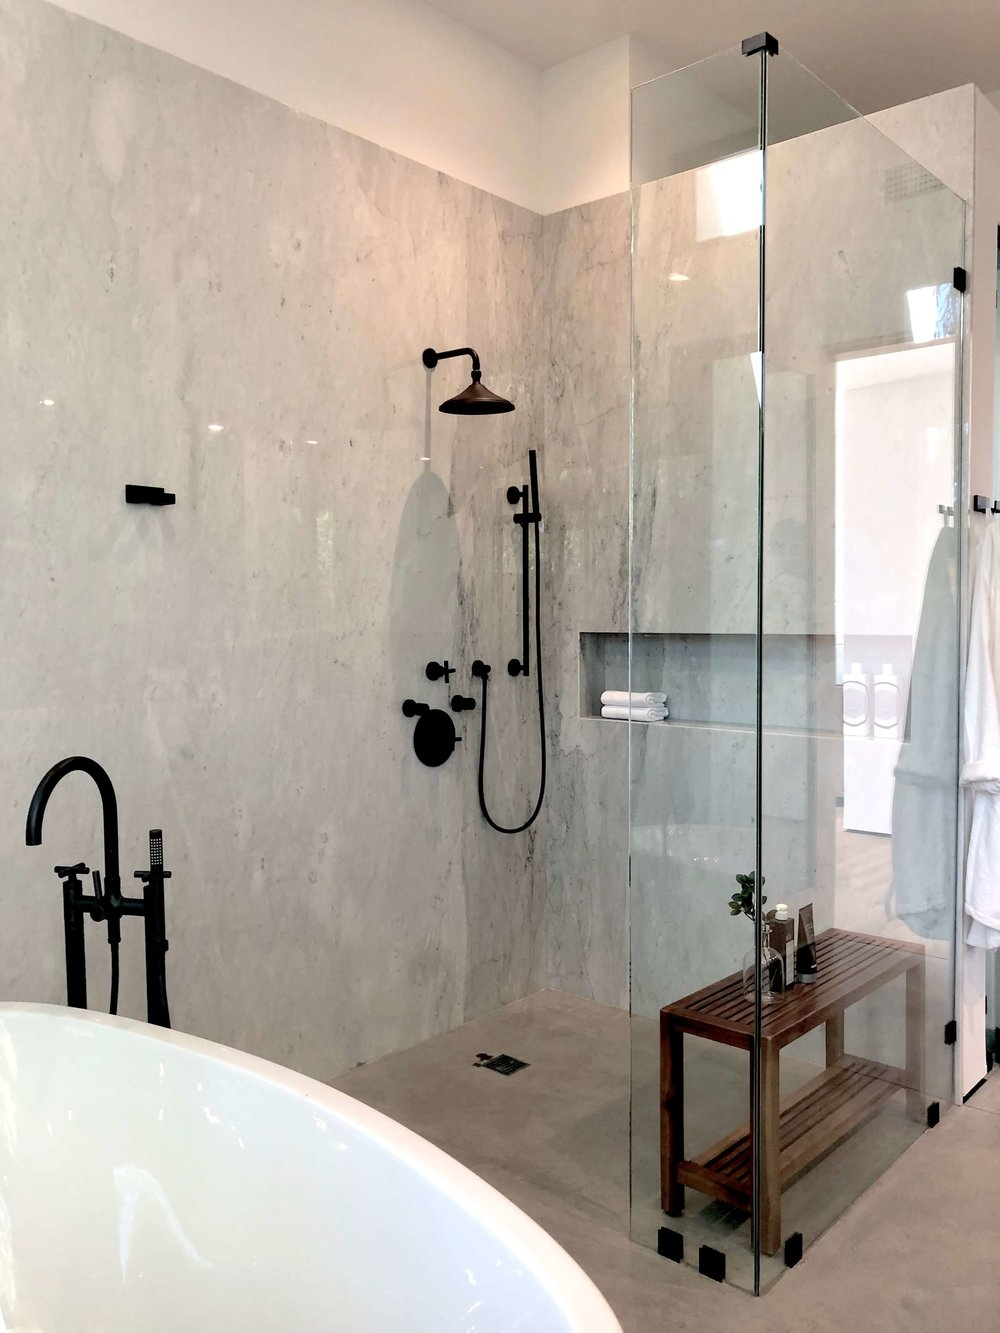 25 Beautiful Shower Niches For Your Beautiful Bath Products | Project by:  Vitus Matare   More about this bathroom and house here.